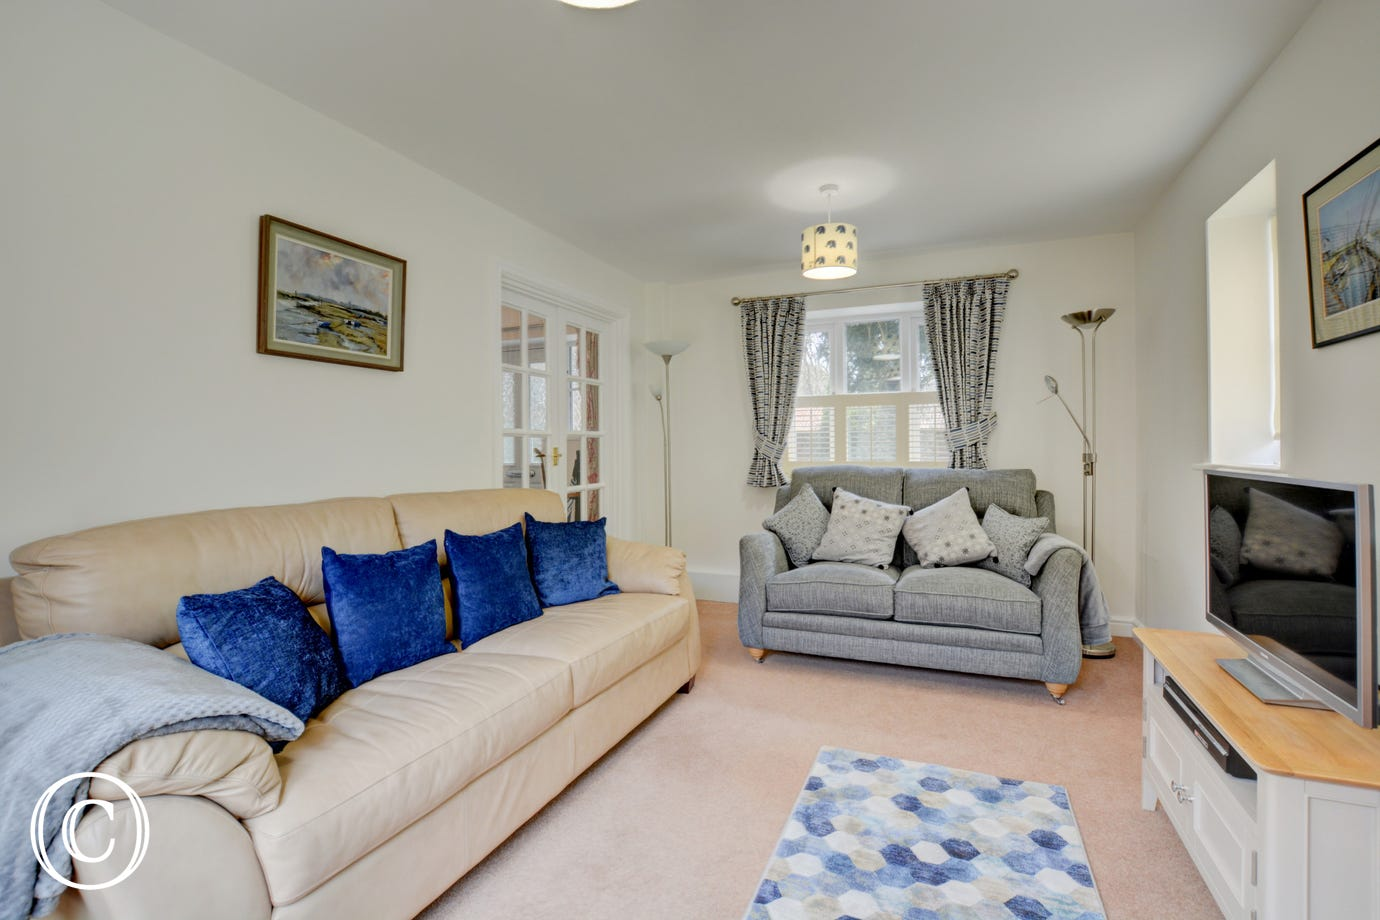 Sitting room with comfortable sofas